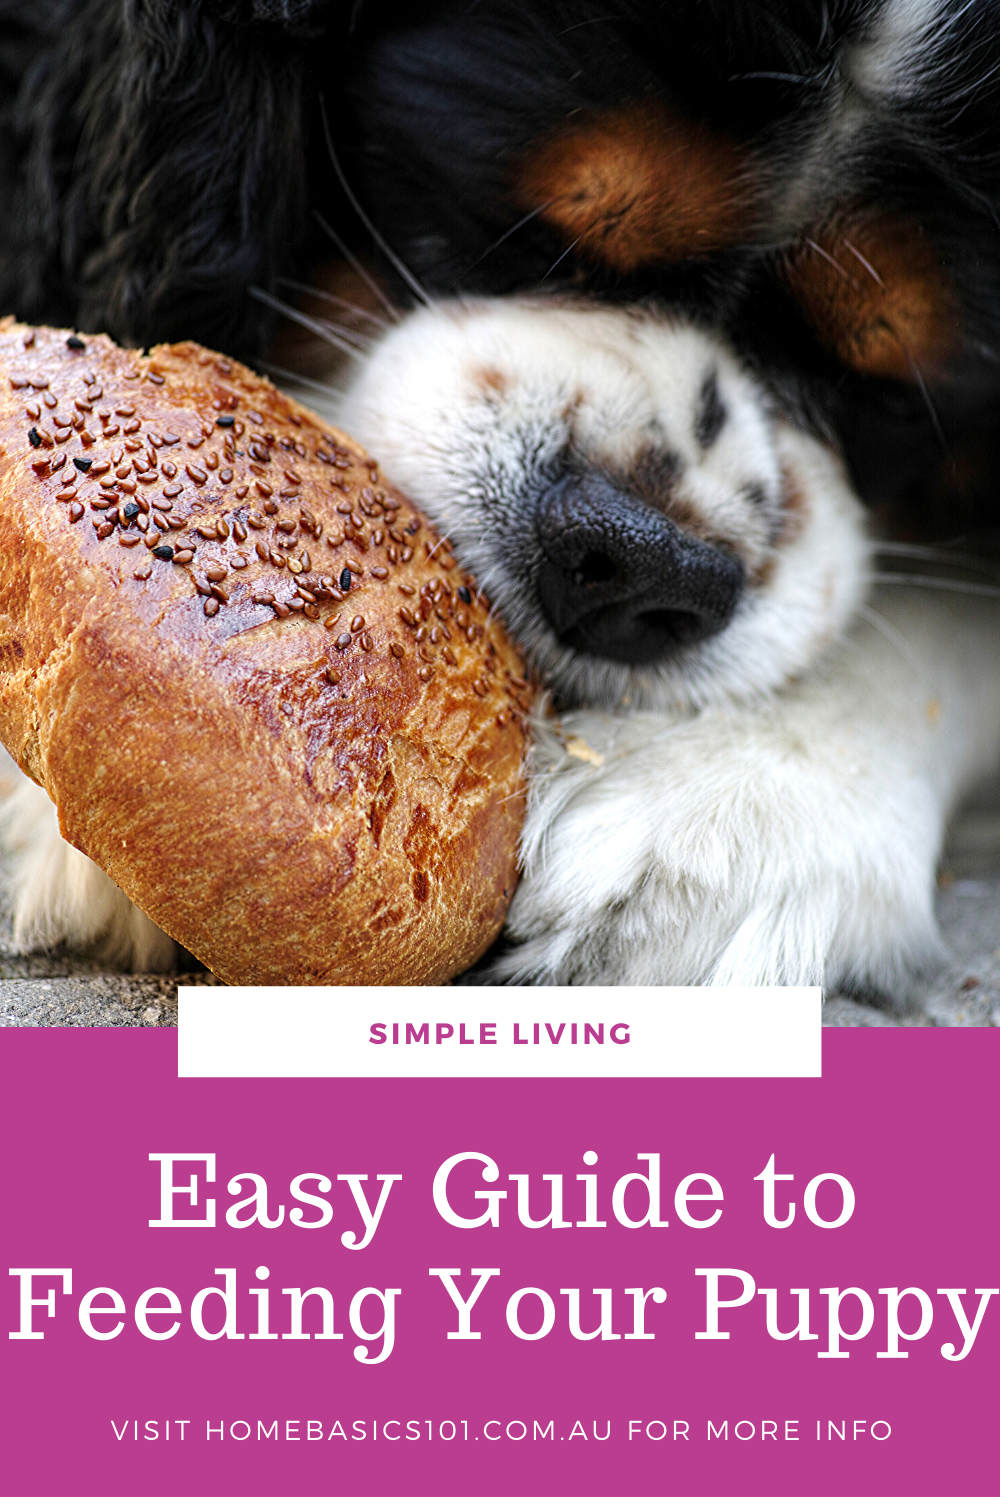 Simple tips to Feeding your Puppy